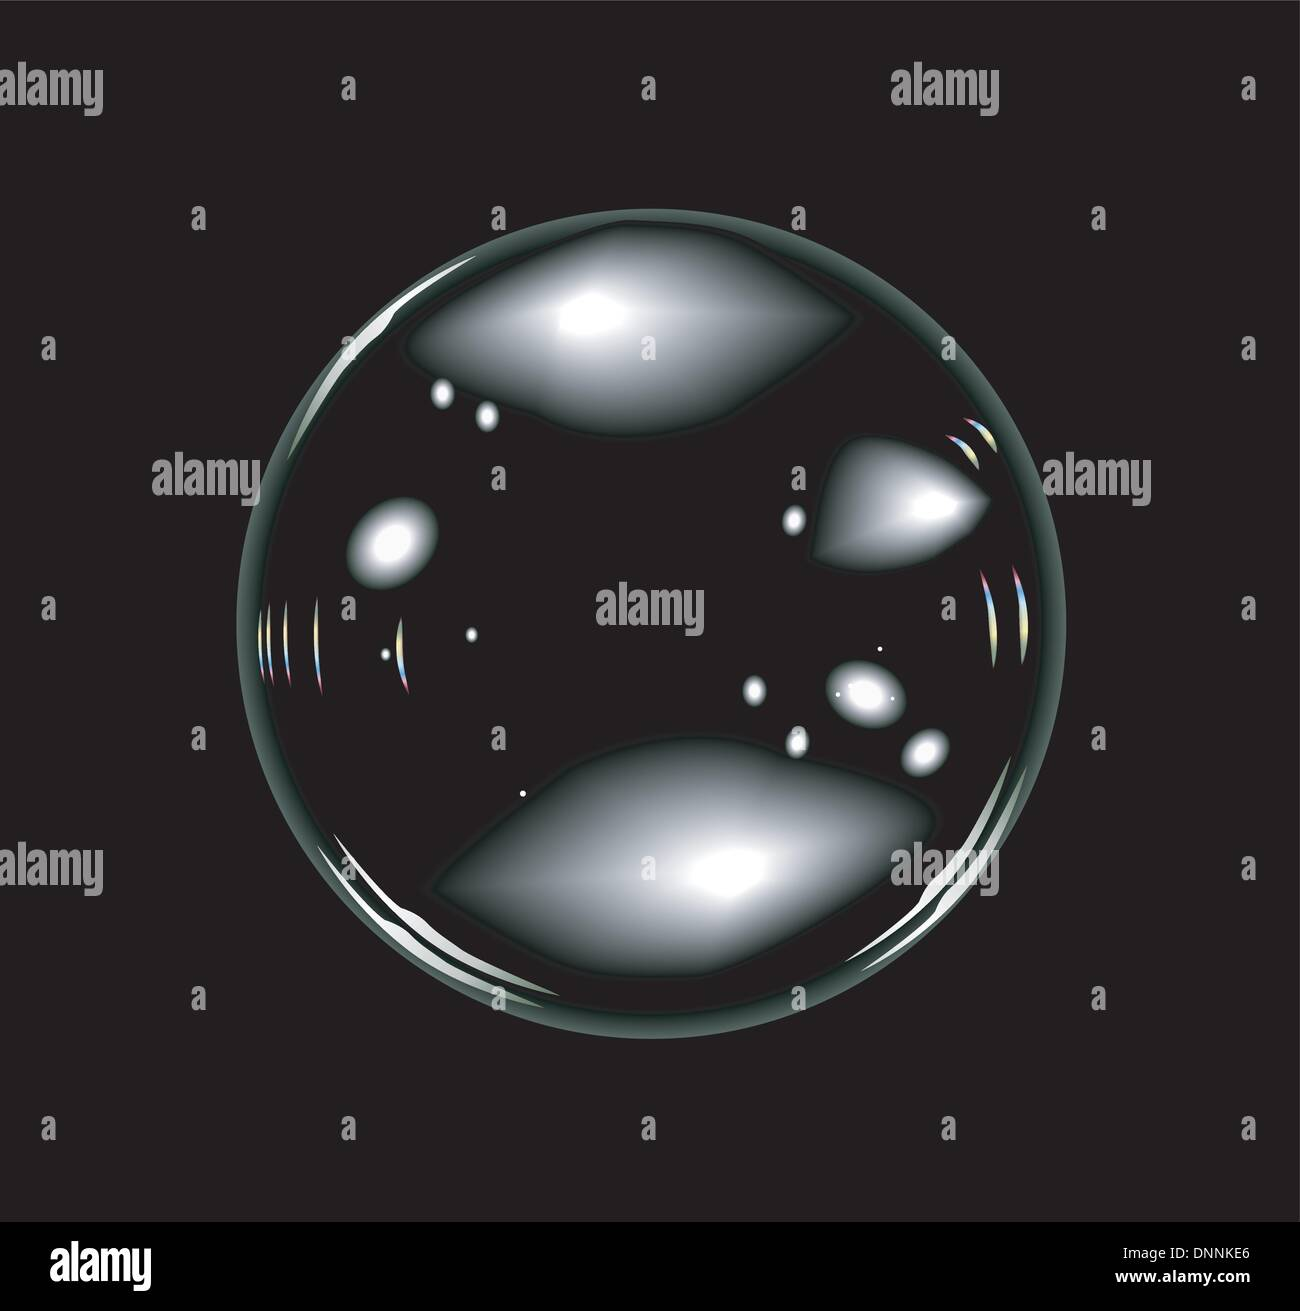 Vector of soap bubbles on balck background. No transparency and effects. - Stock Image